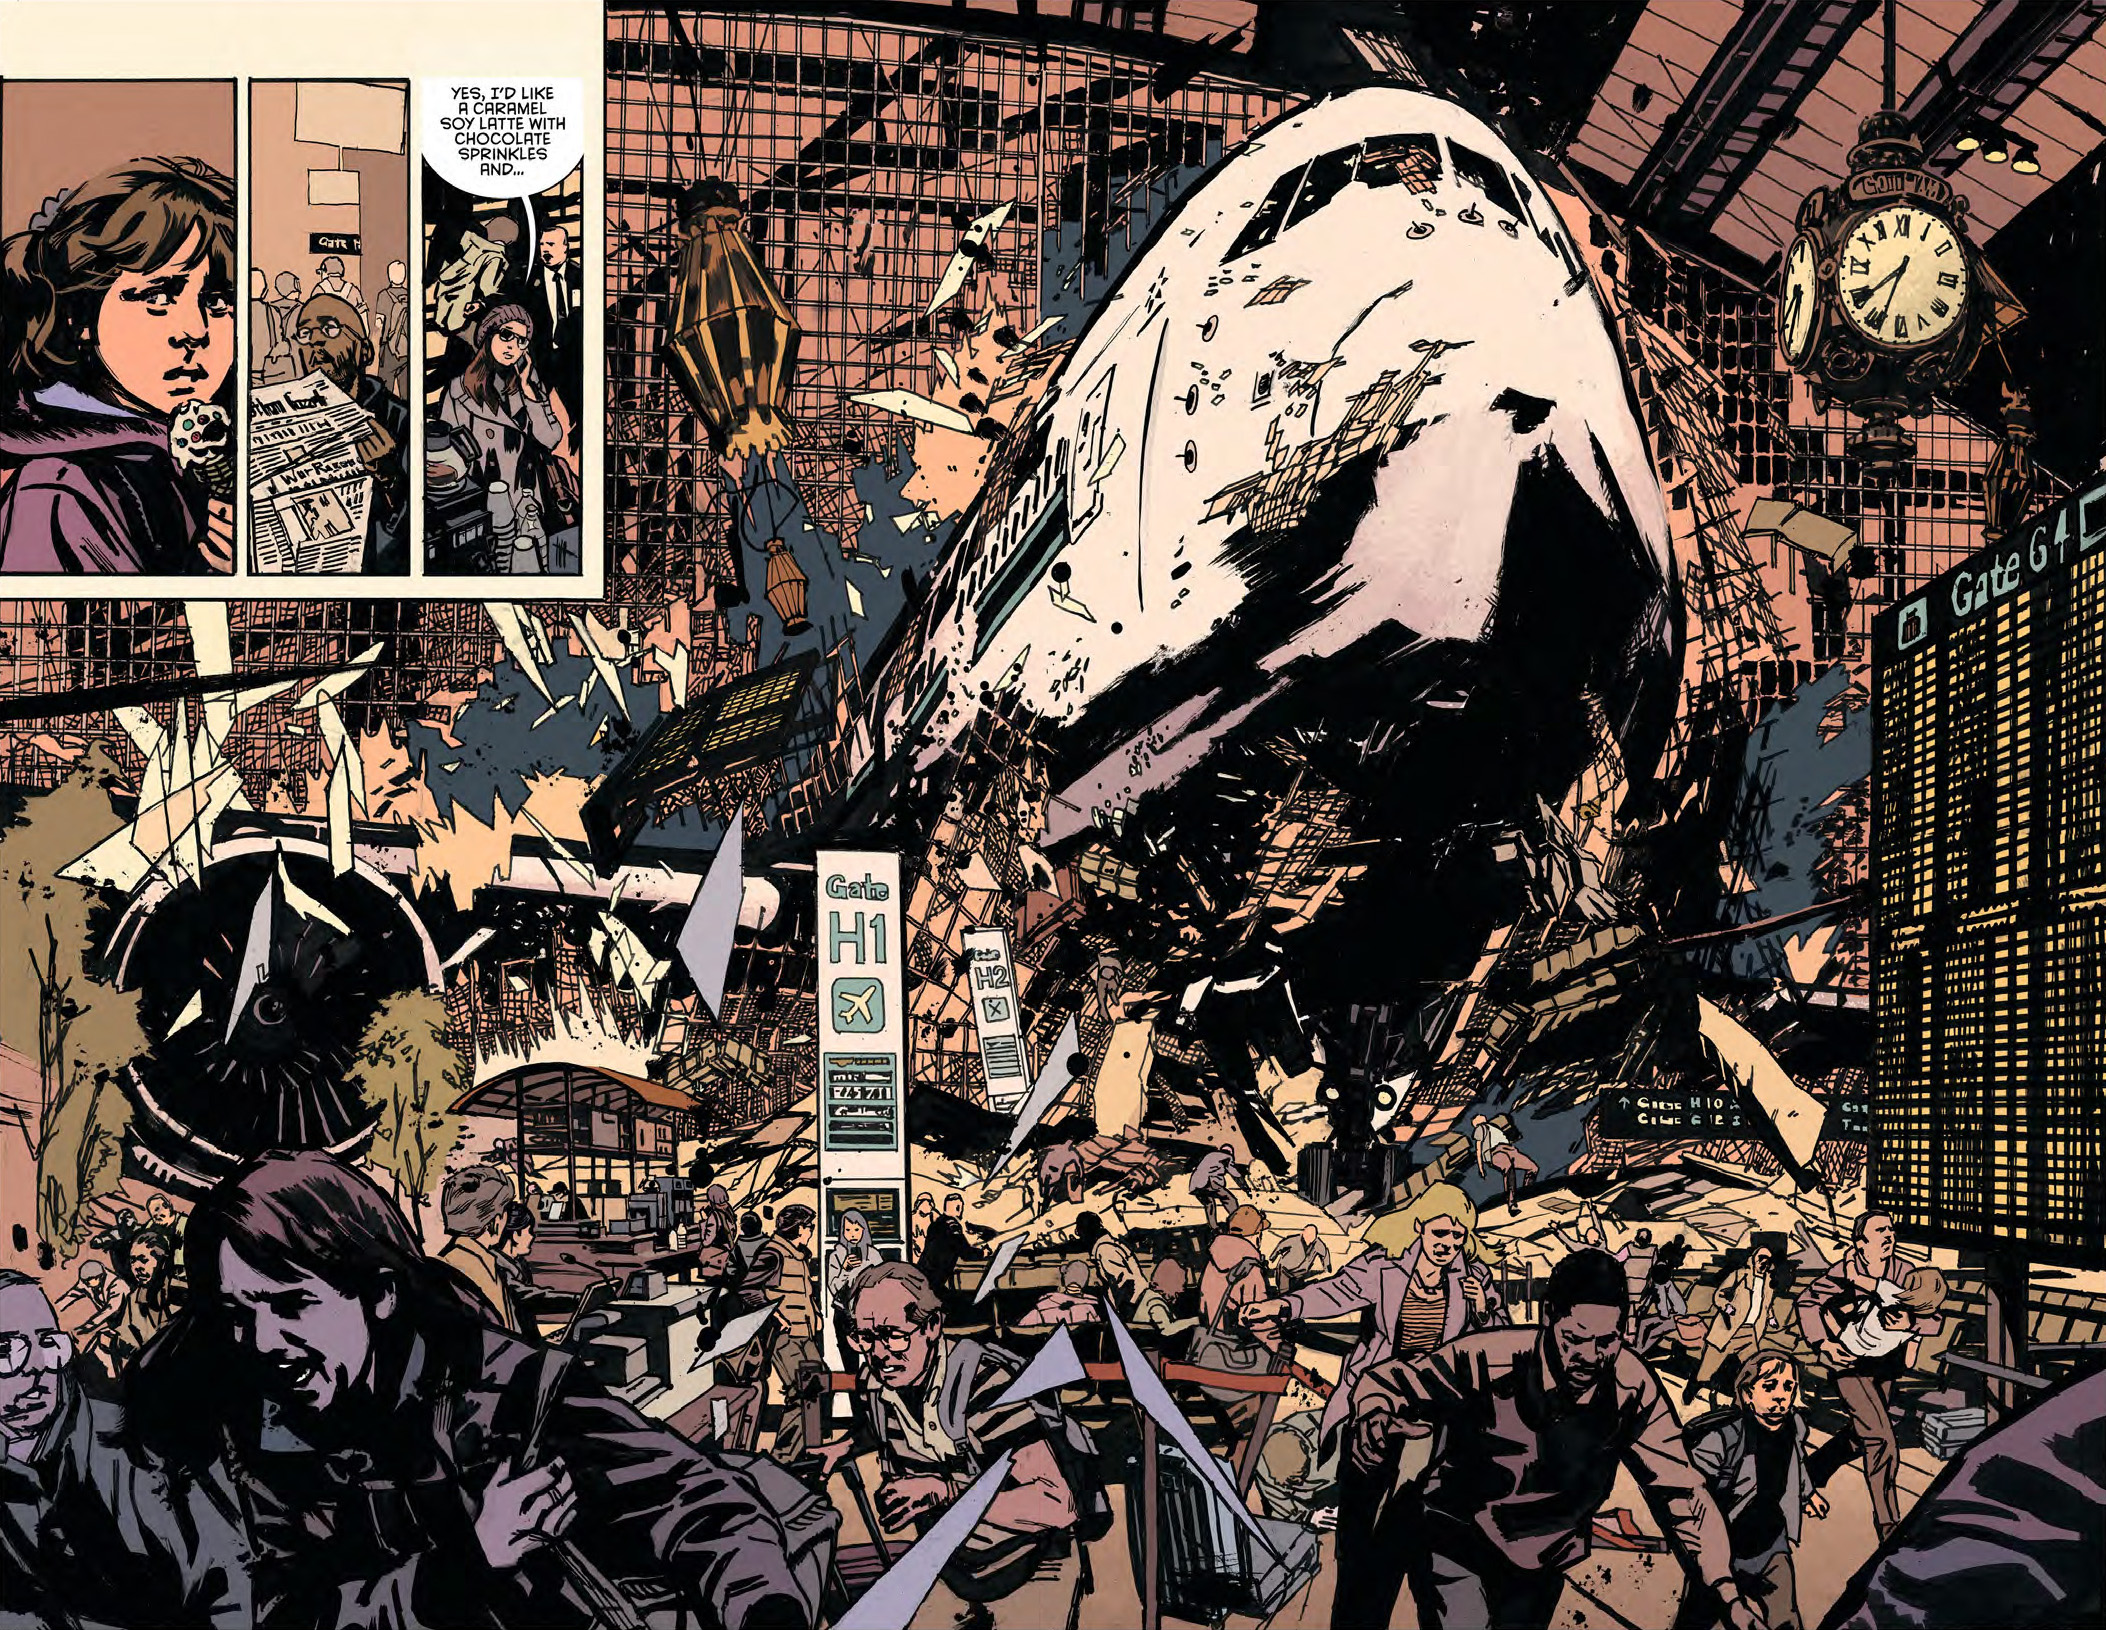 Art by JP Leon, from Detective Comics #35.